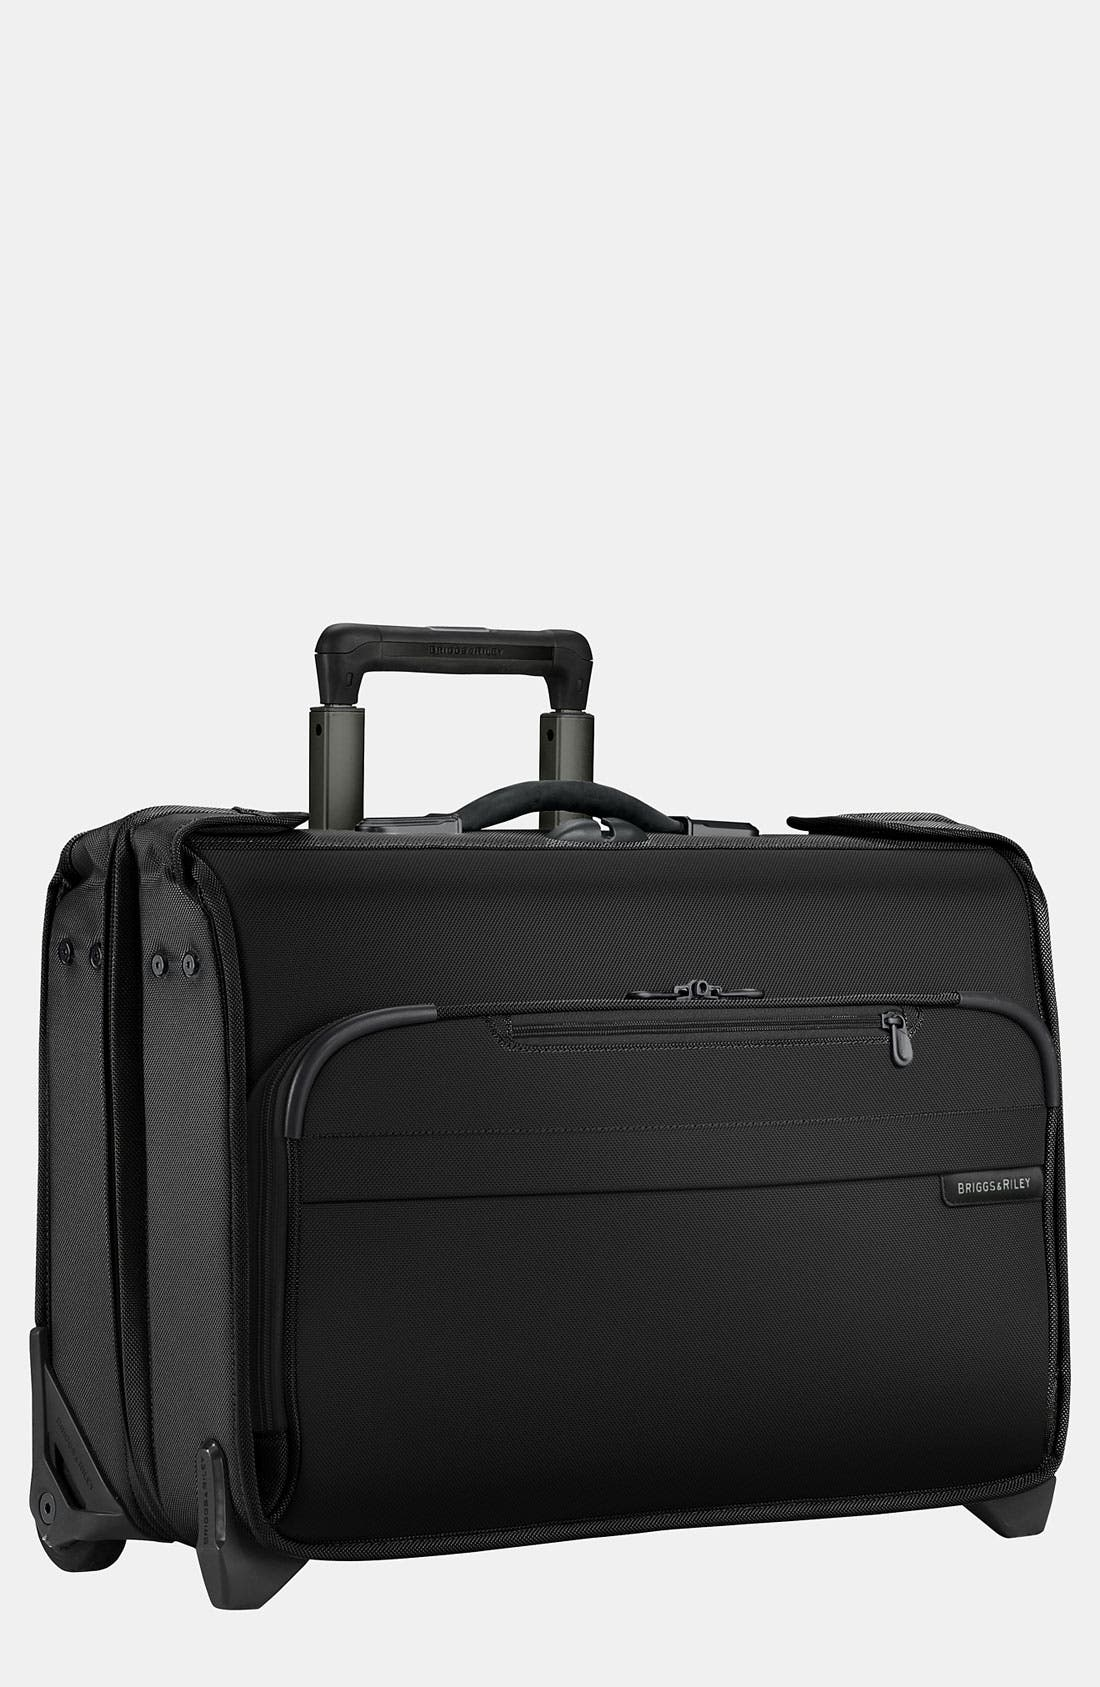 Alternate Image 1 Selected - Briggs & Riley 'Baseline' Rolling Carry-On Garment Bag